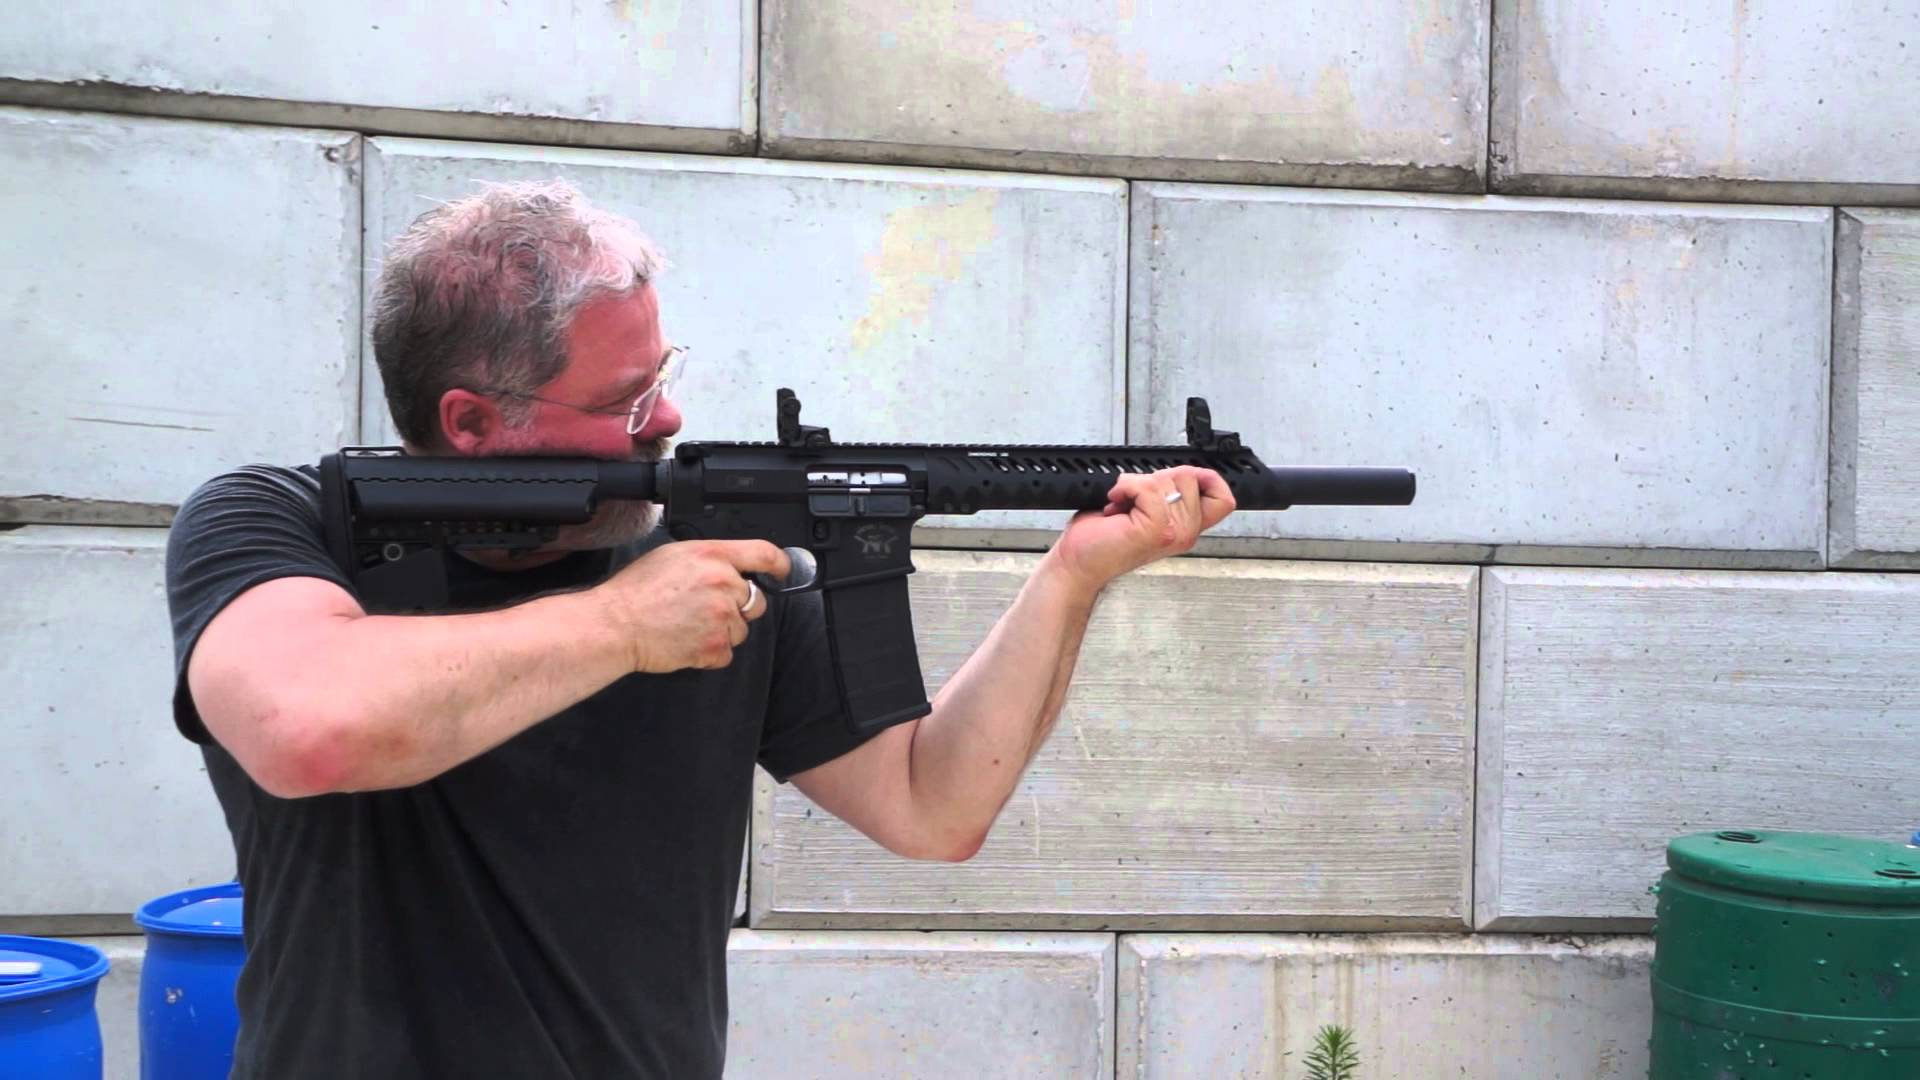 SHOOTING A CUSTOM BUILT SUBSONIC 300 AAC BLACKOUT AR-15 SUPPRESSED